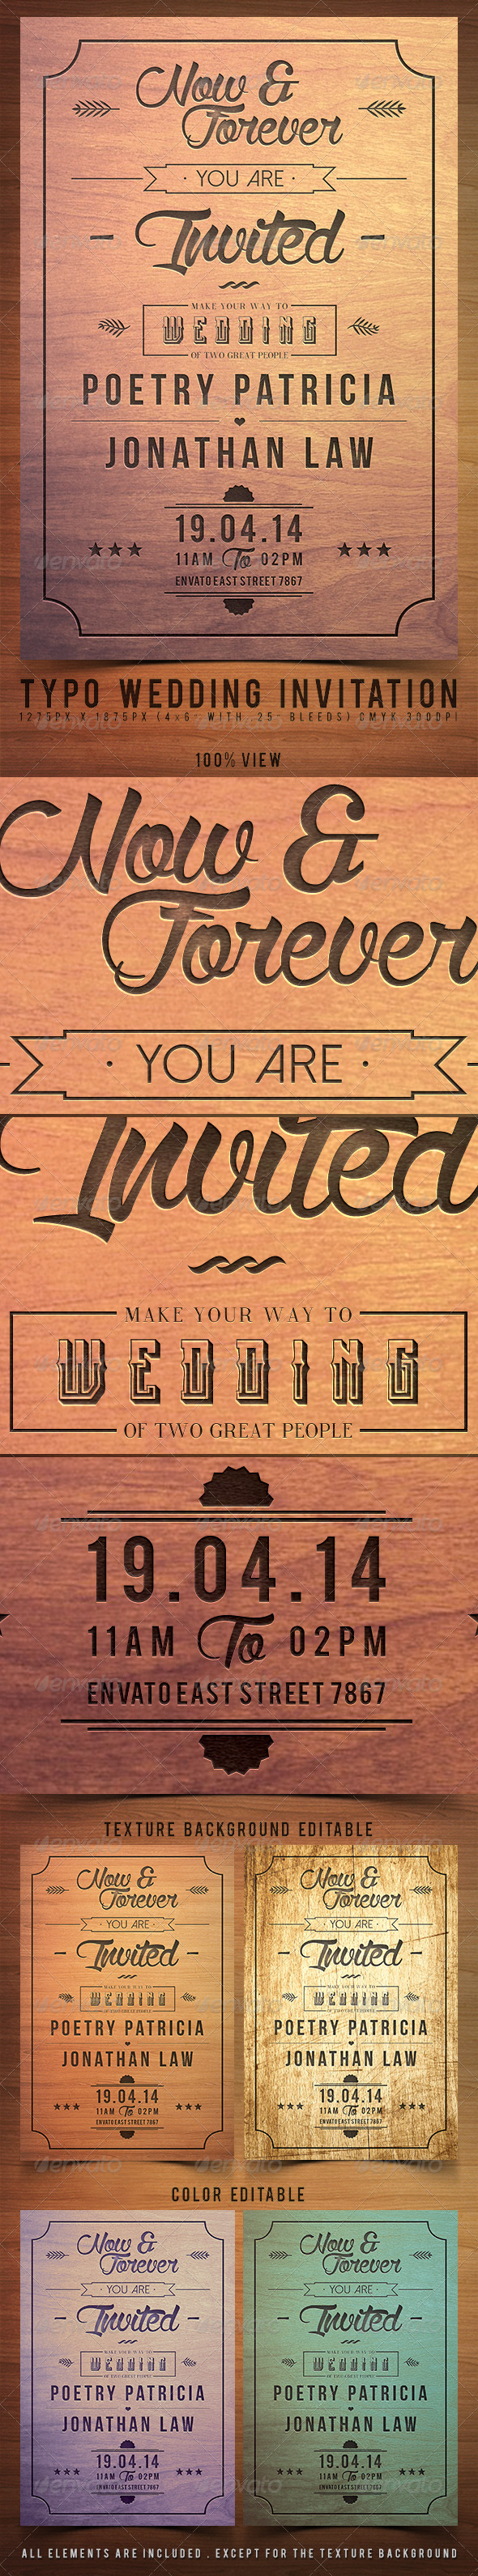 GraphicRiver Typo Wedding Invitation 7298698